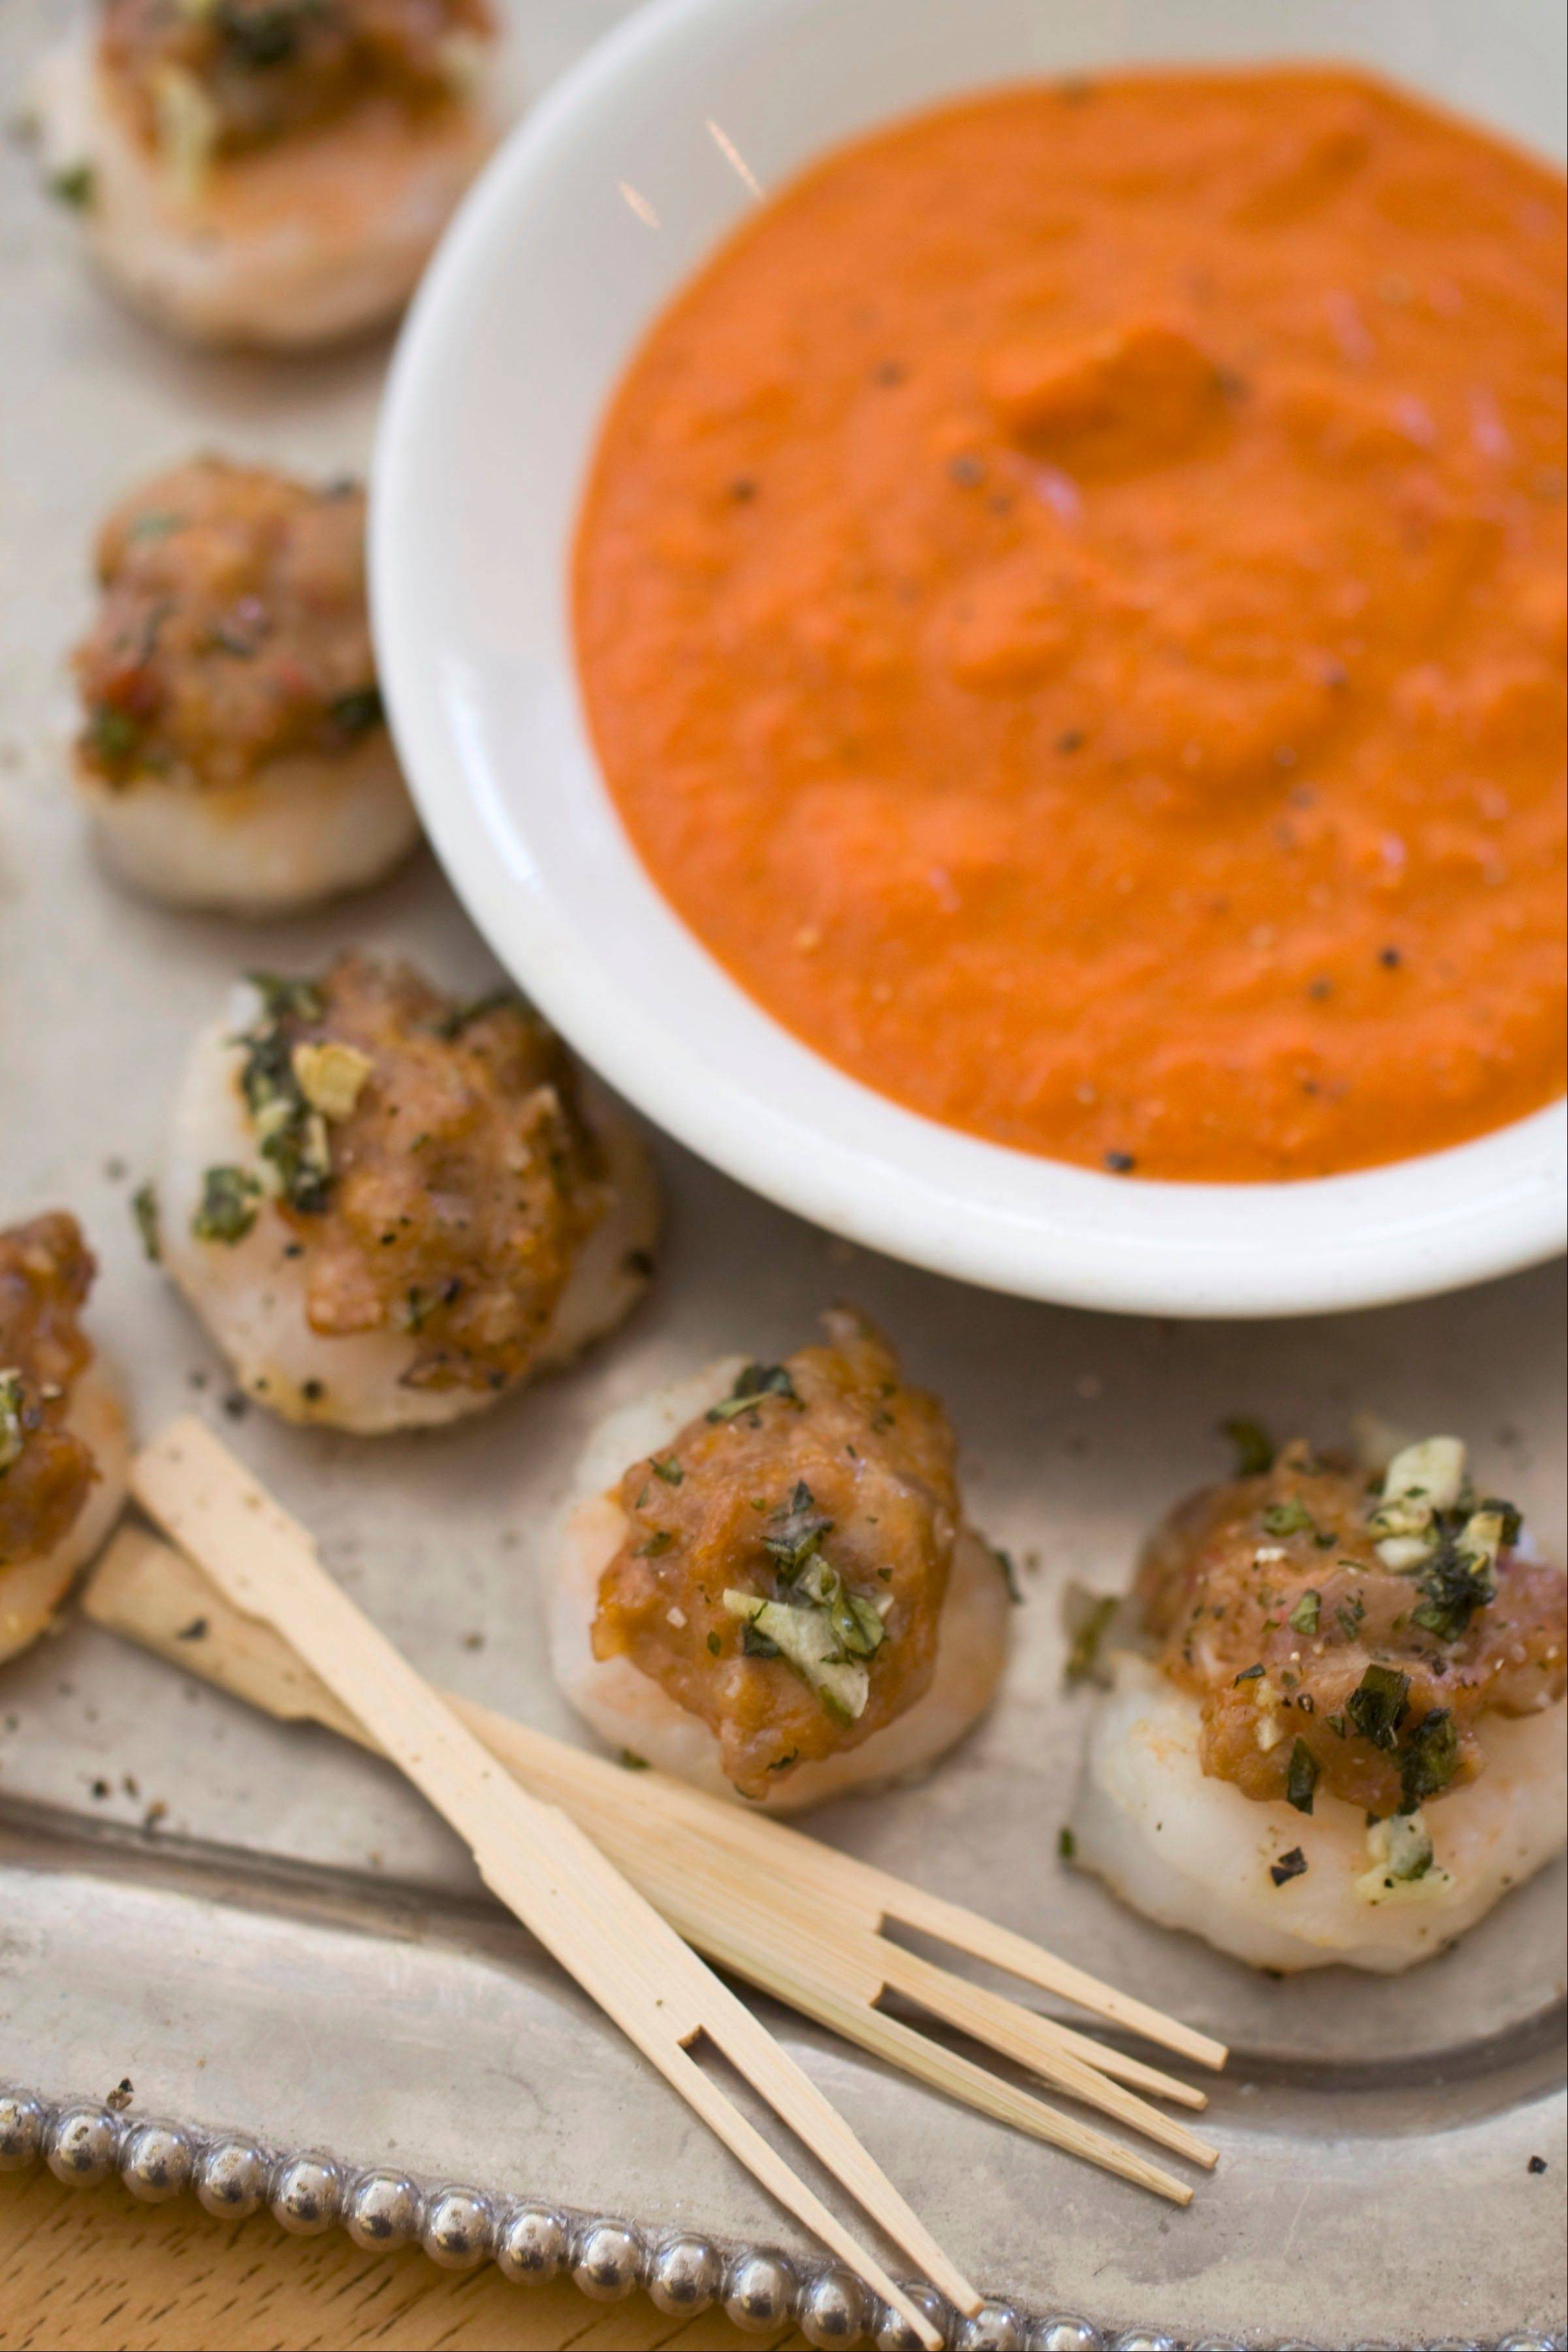 Wrapping shrimp around a nugget of sausage is a clever trick and the proteins bake into the perfect appetizer or hors d�oeuvres for a holiday party.